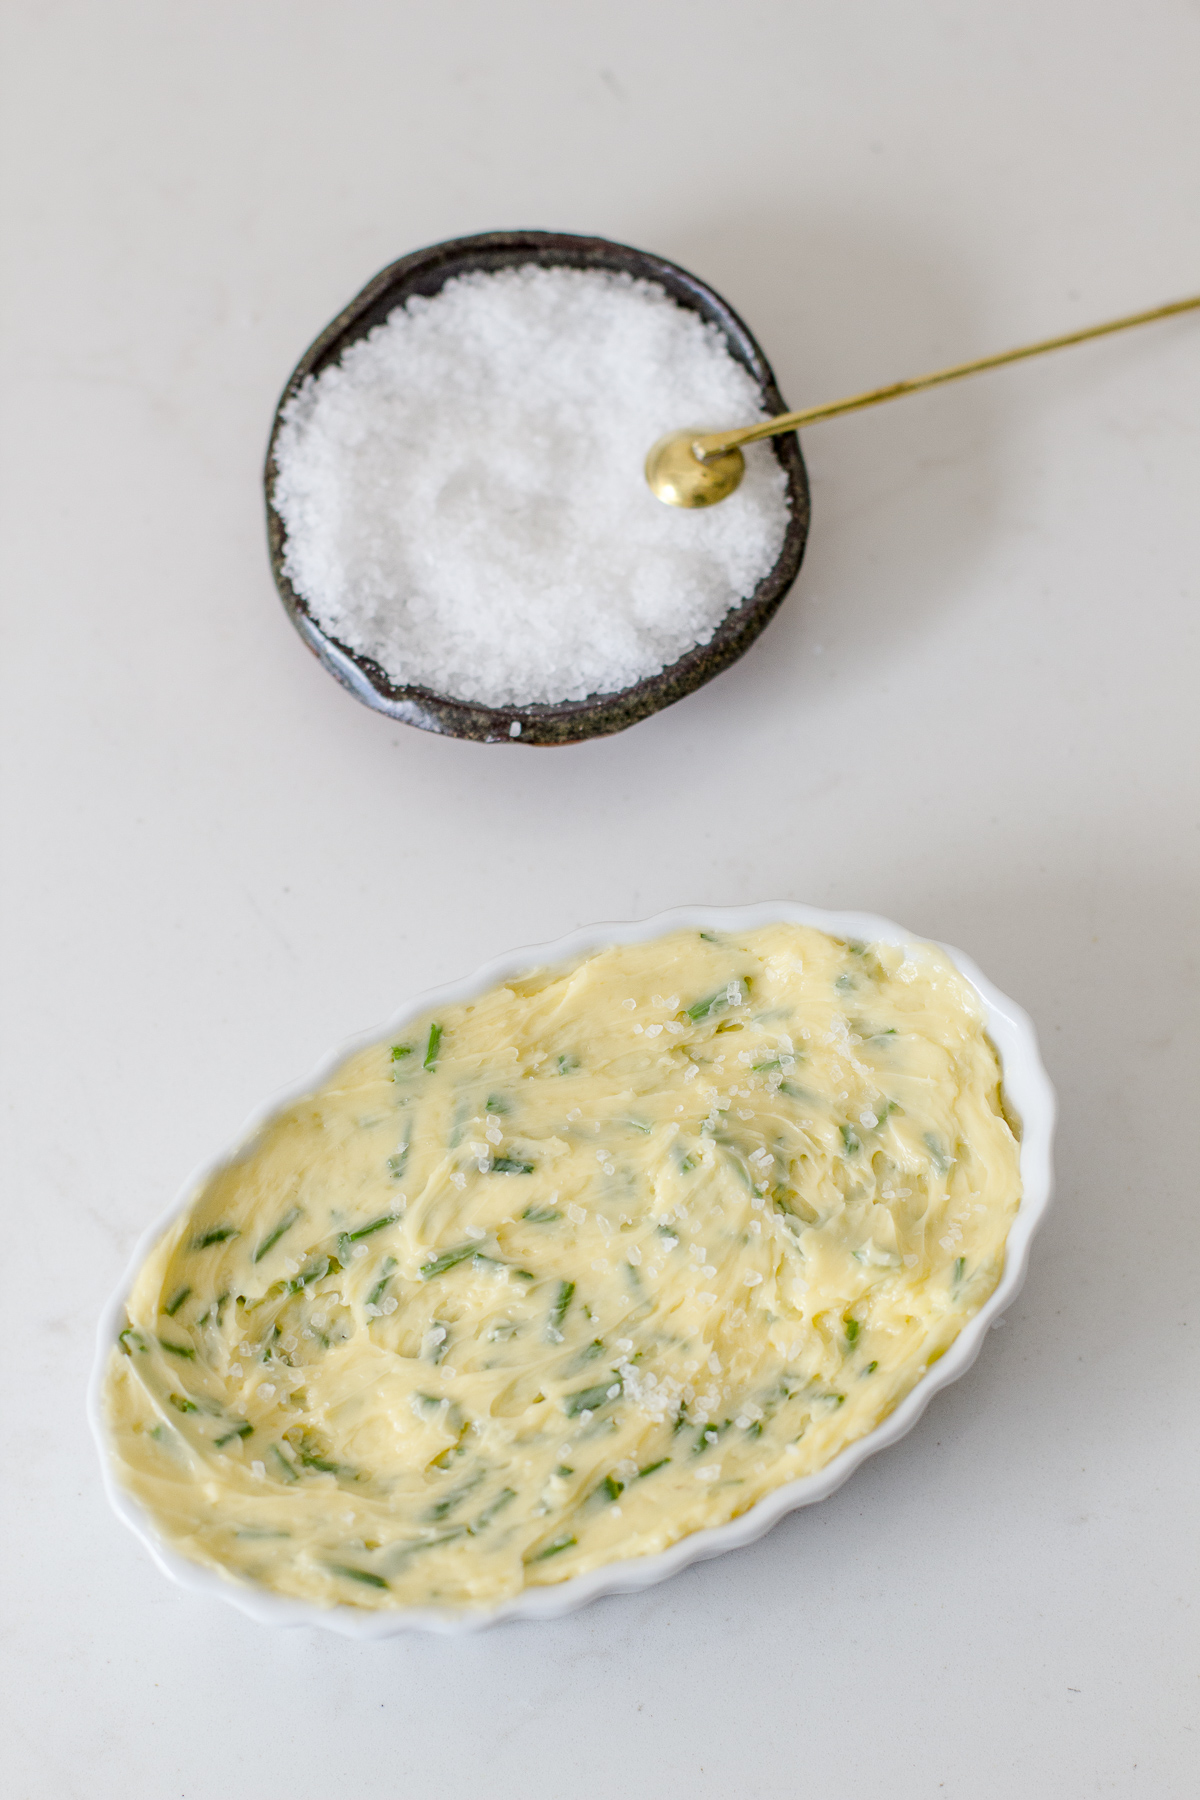 Garlic Chive Butter with Mortons Salt